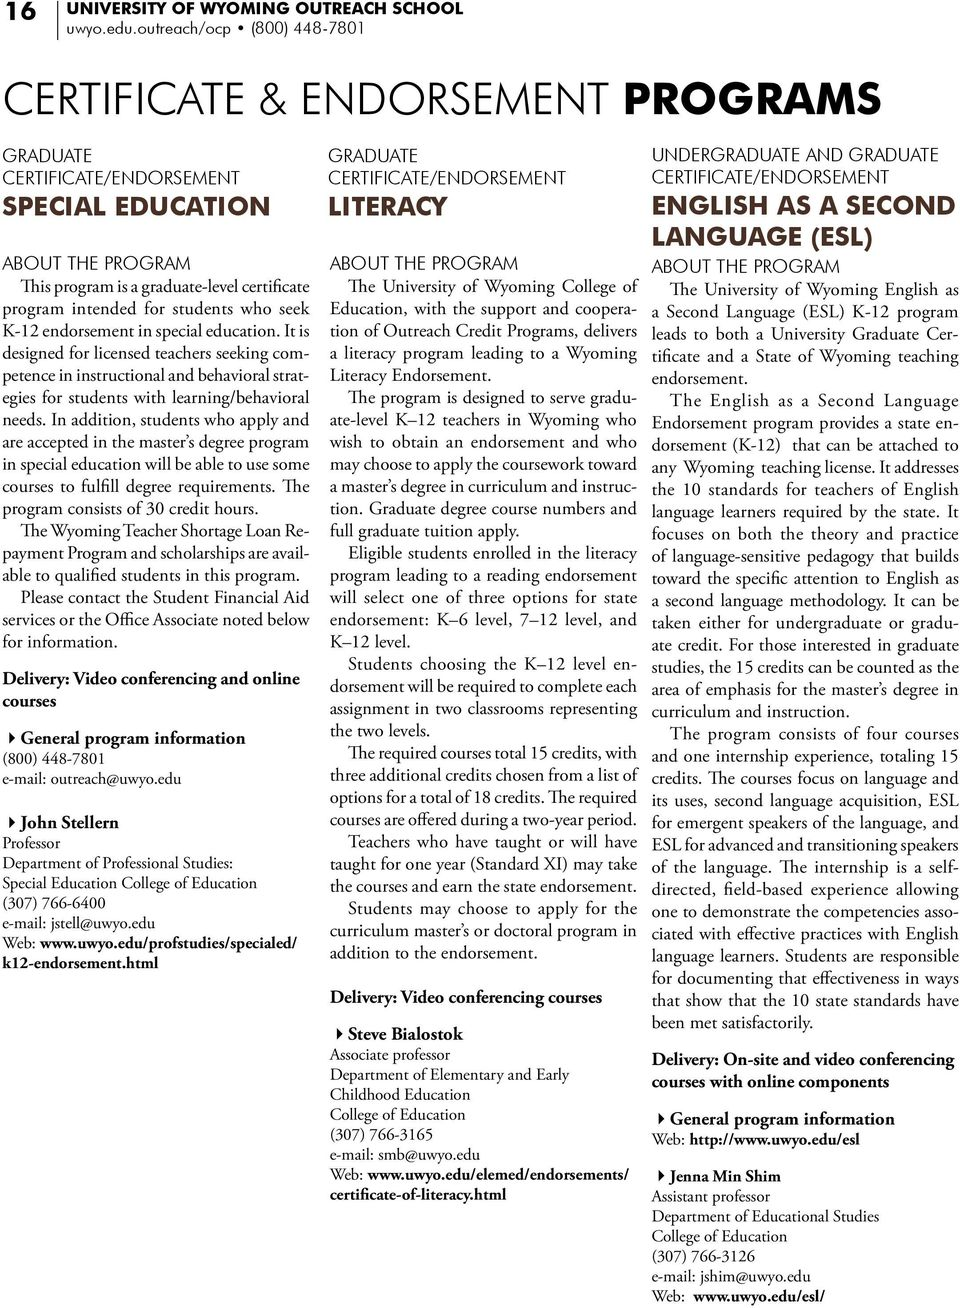 students who seek K-12 endorsement in special education. It is designed for licensed teachers seeking competence in instructional and behavioral strategies for students with learning/behavioral needs.